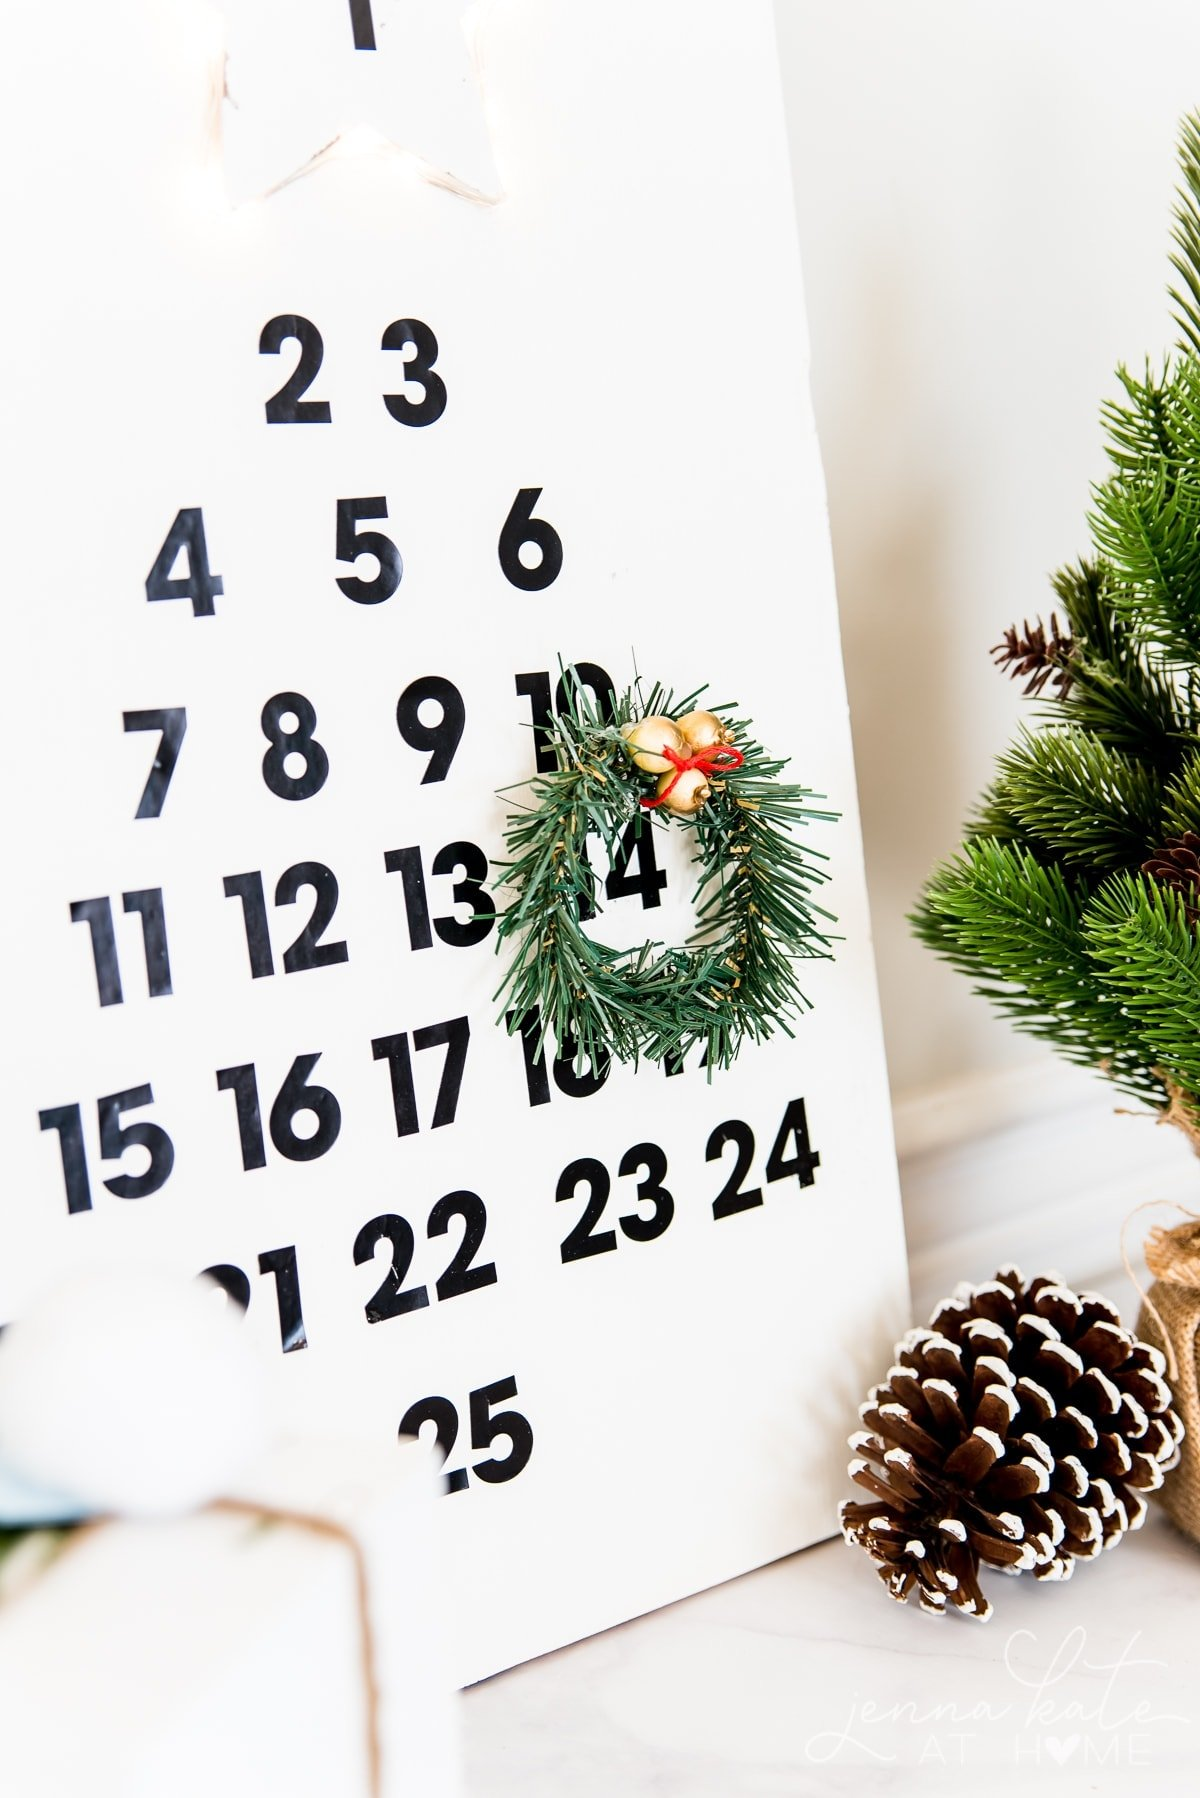 Your kids will love moving the wreath every day on this DIY wooden advent calendar